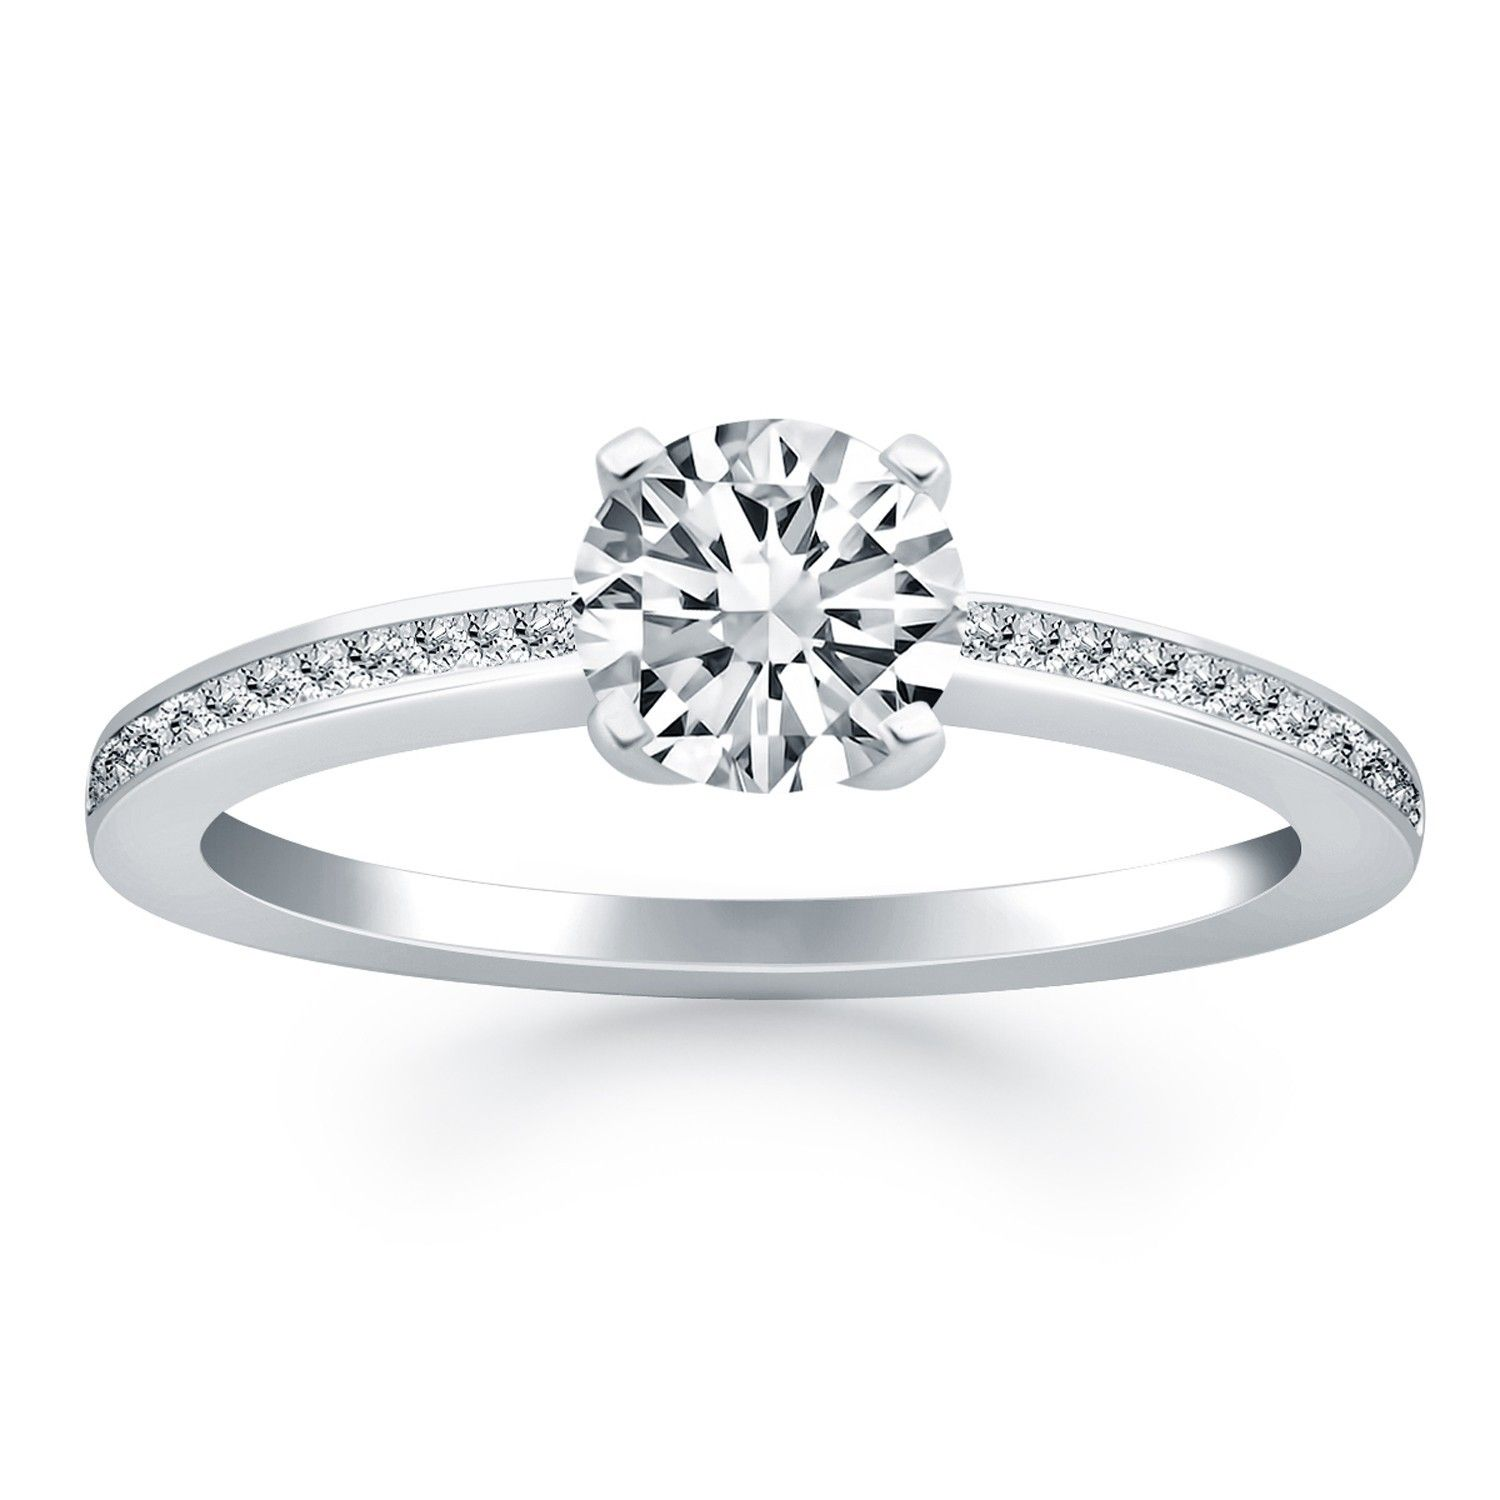 Nice k white gold classic pave diamond band engagement ring check